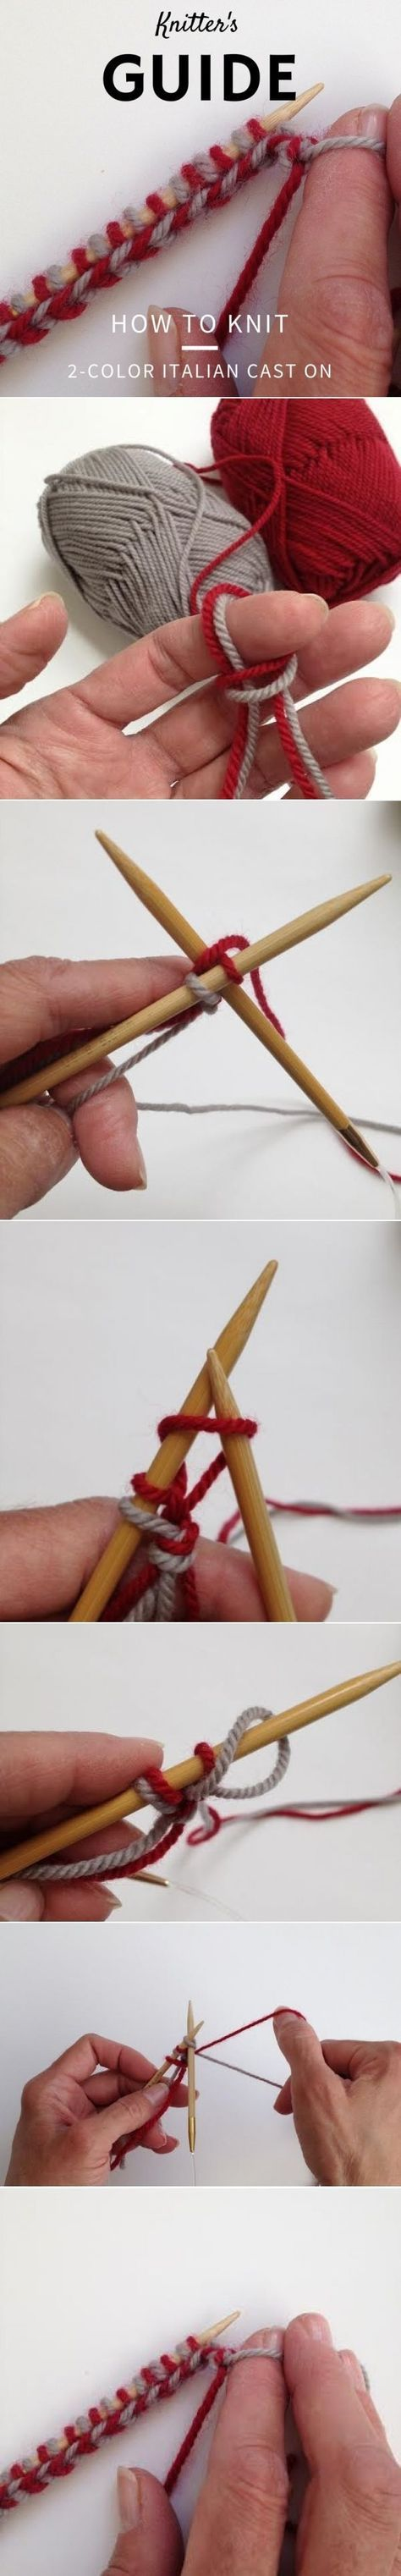 How To Knit a 2 Color Italian Cast-on